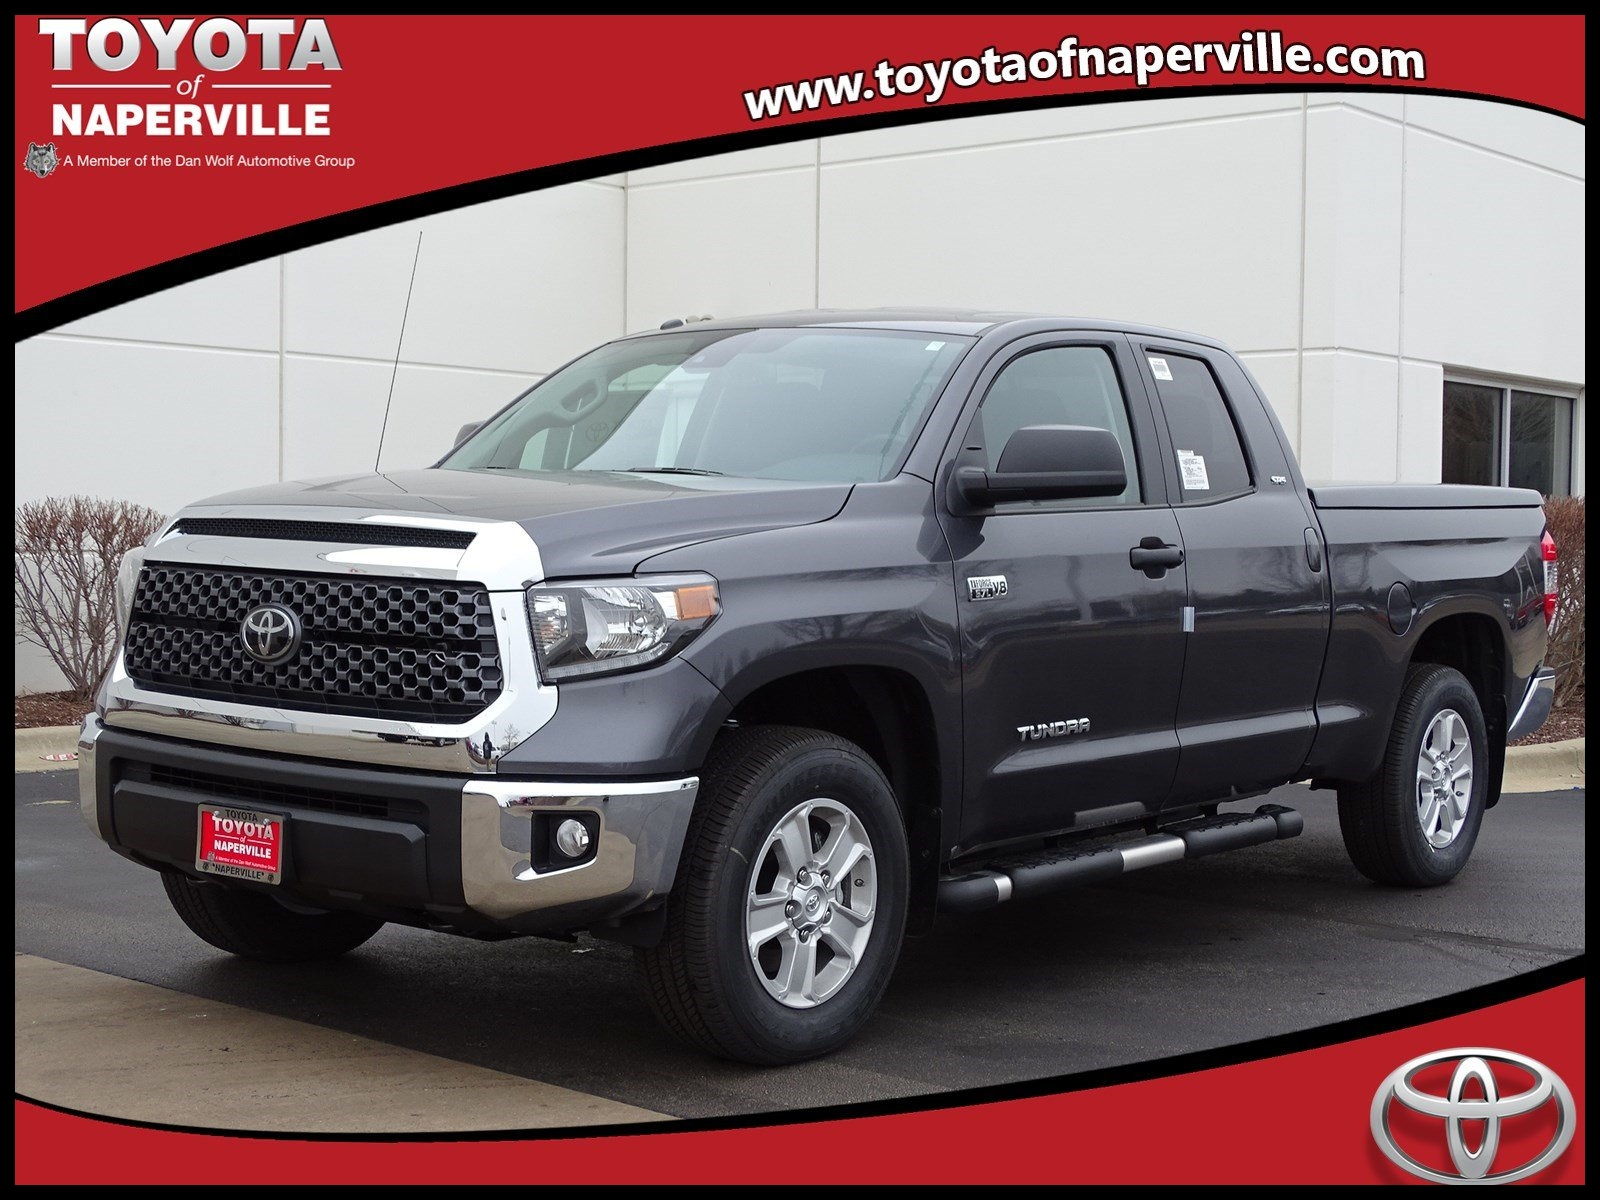 Hot New 2018 toyota Tundra Sr5 4d Double Cab In Naperville T Release Date and Specs